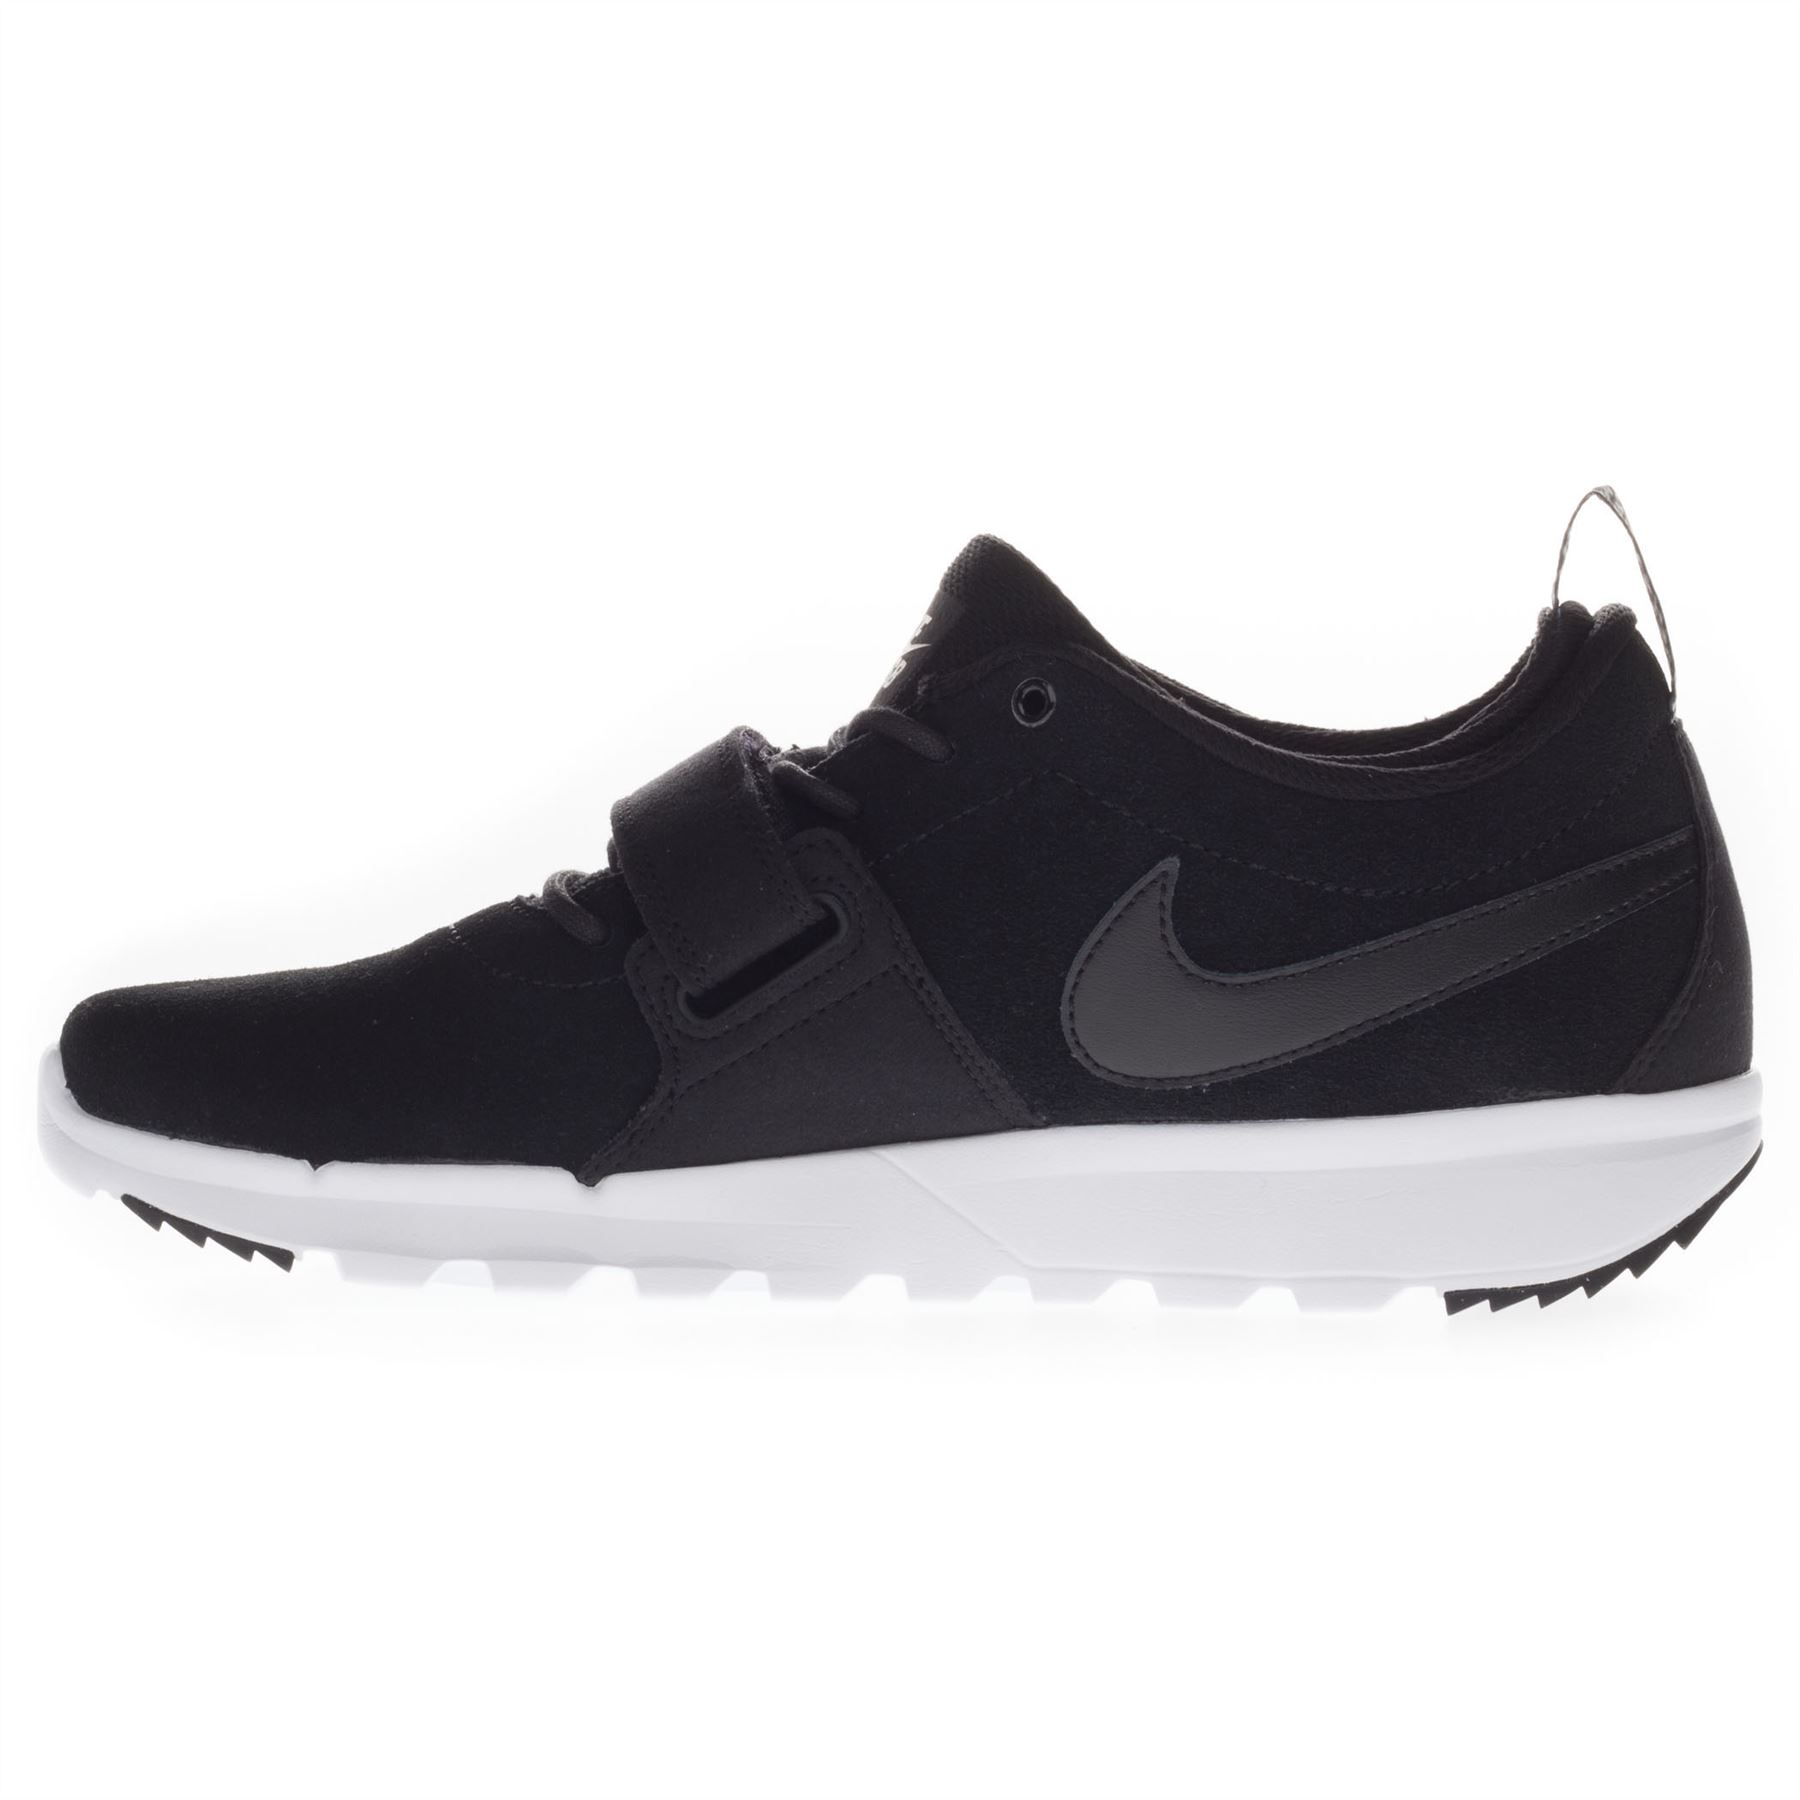 nike shoes with strap on back